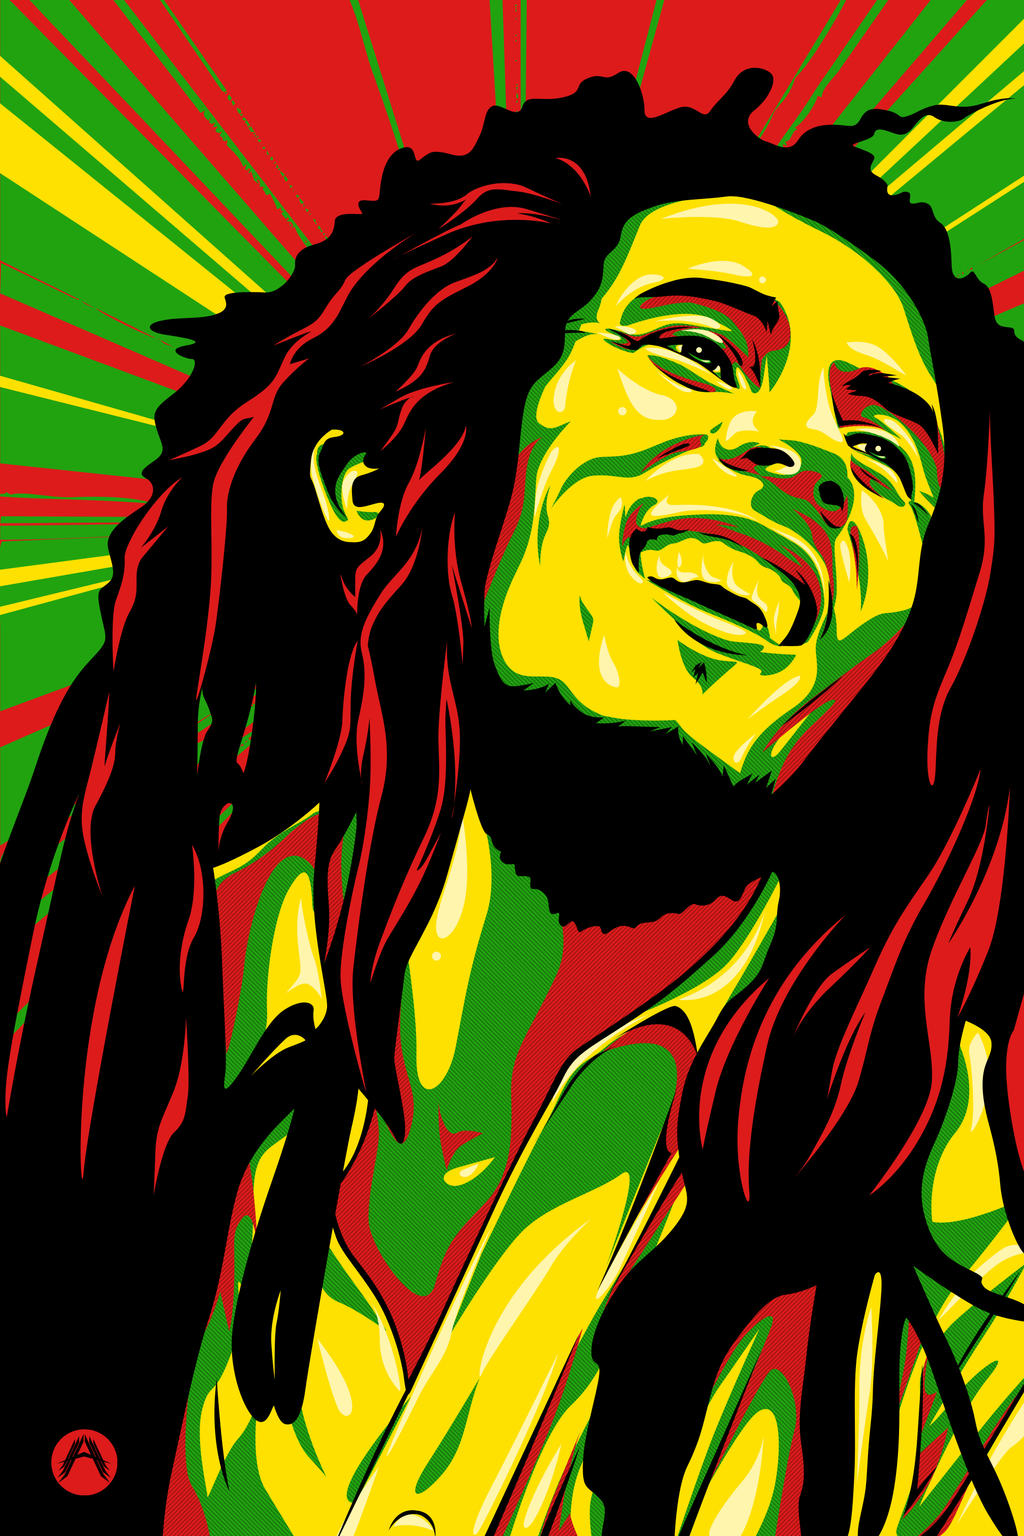 Bob Marley By Silverhornet29 On DeviantArt